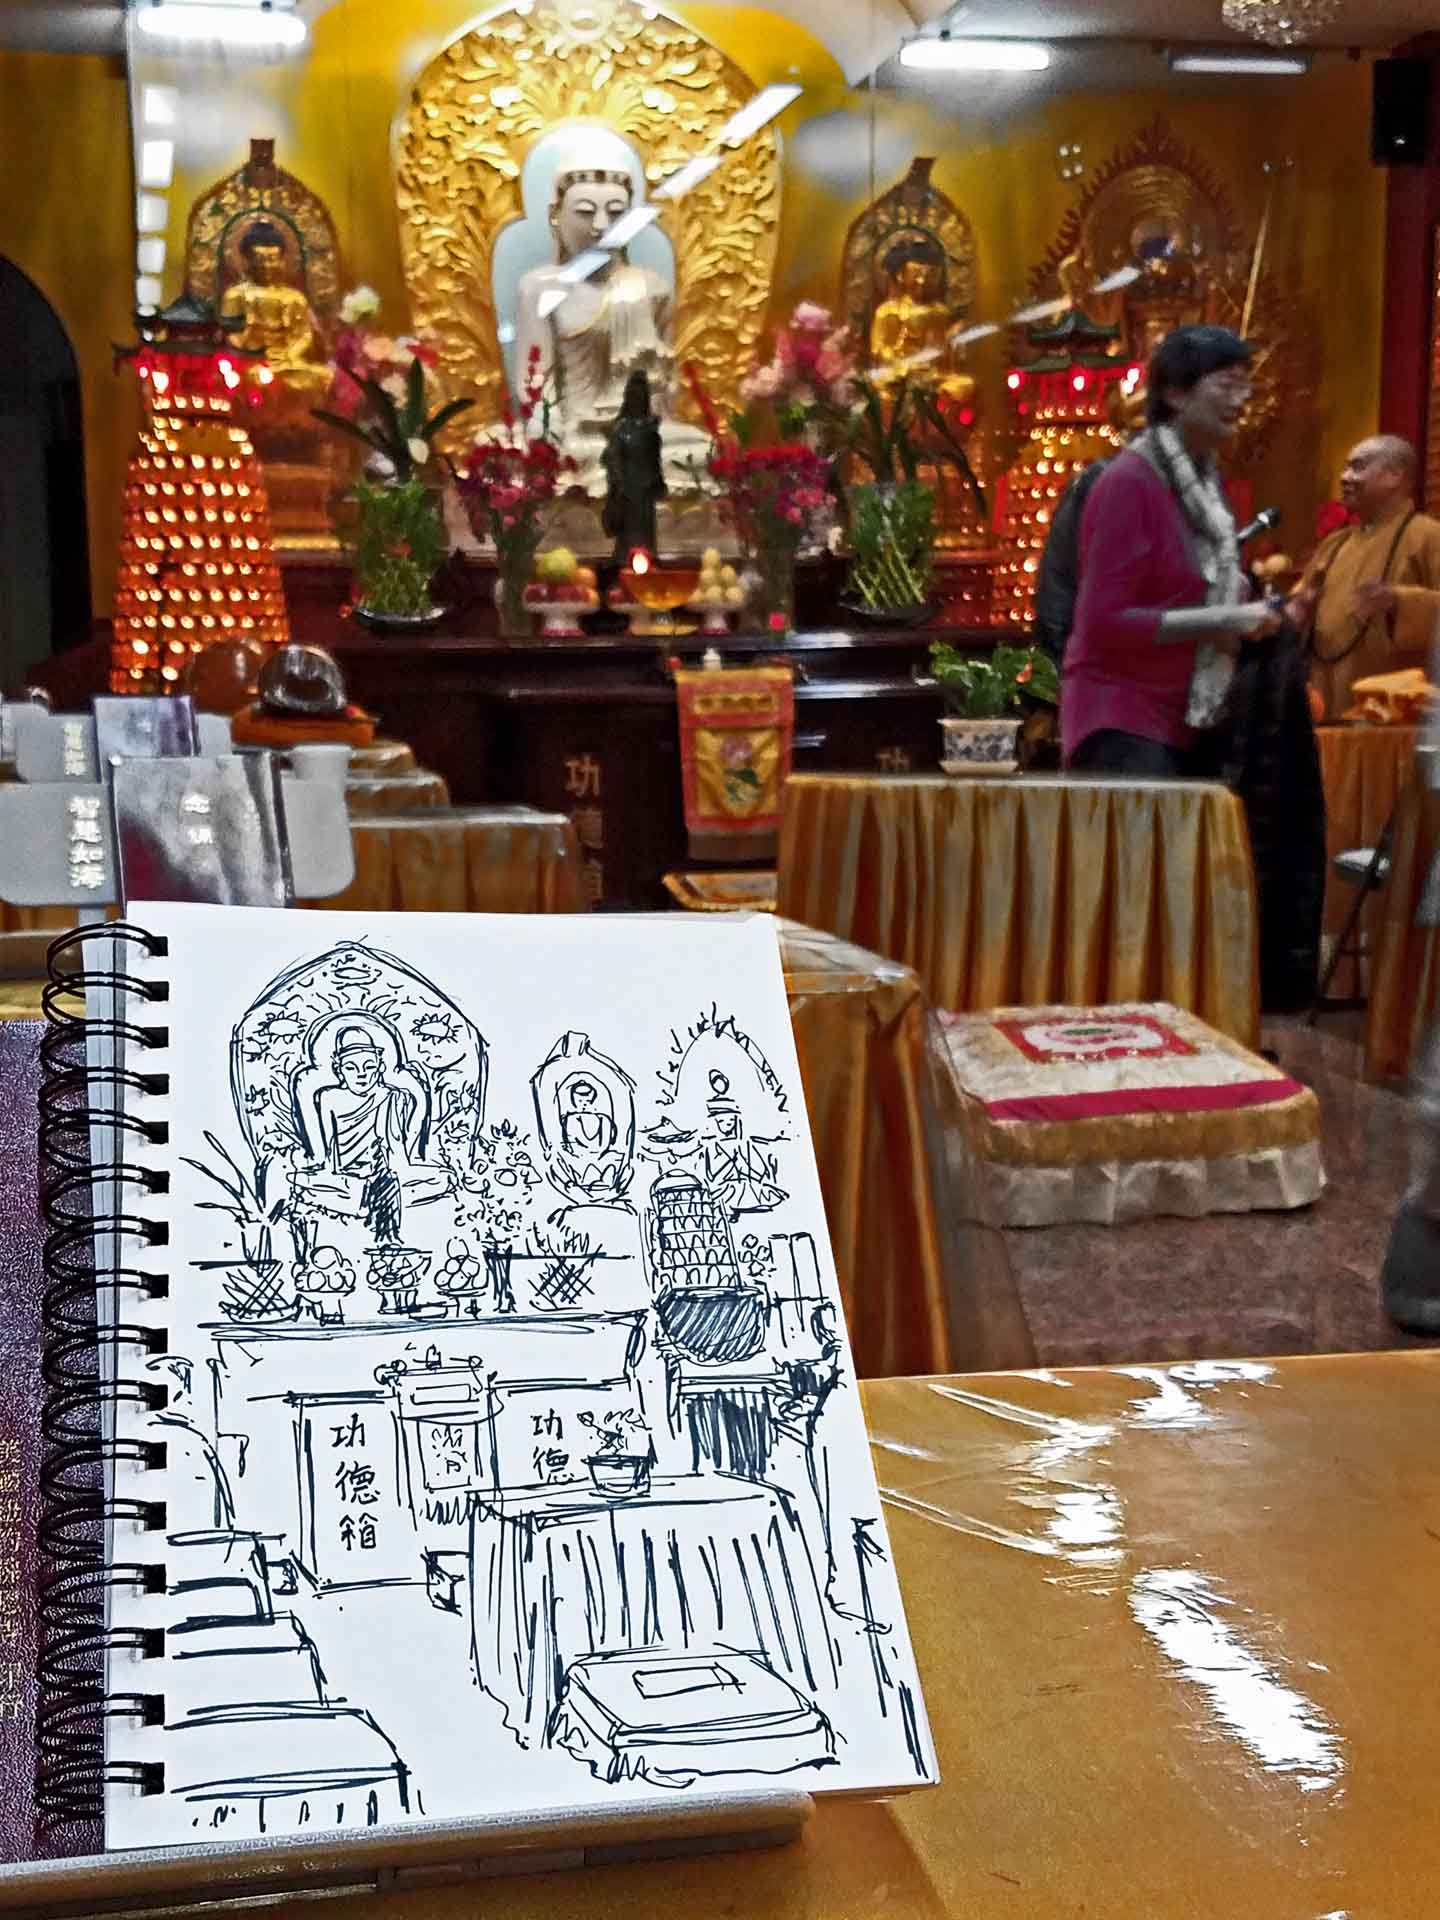 Interior of Puchao Temple, afternoon prayer service. Illustration by Darilyn Carnes/A Journey through NYC religions